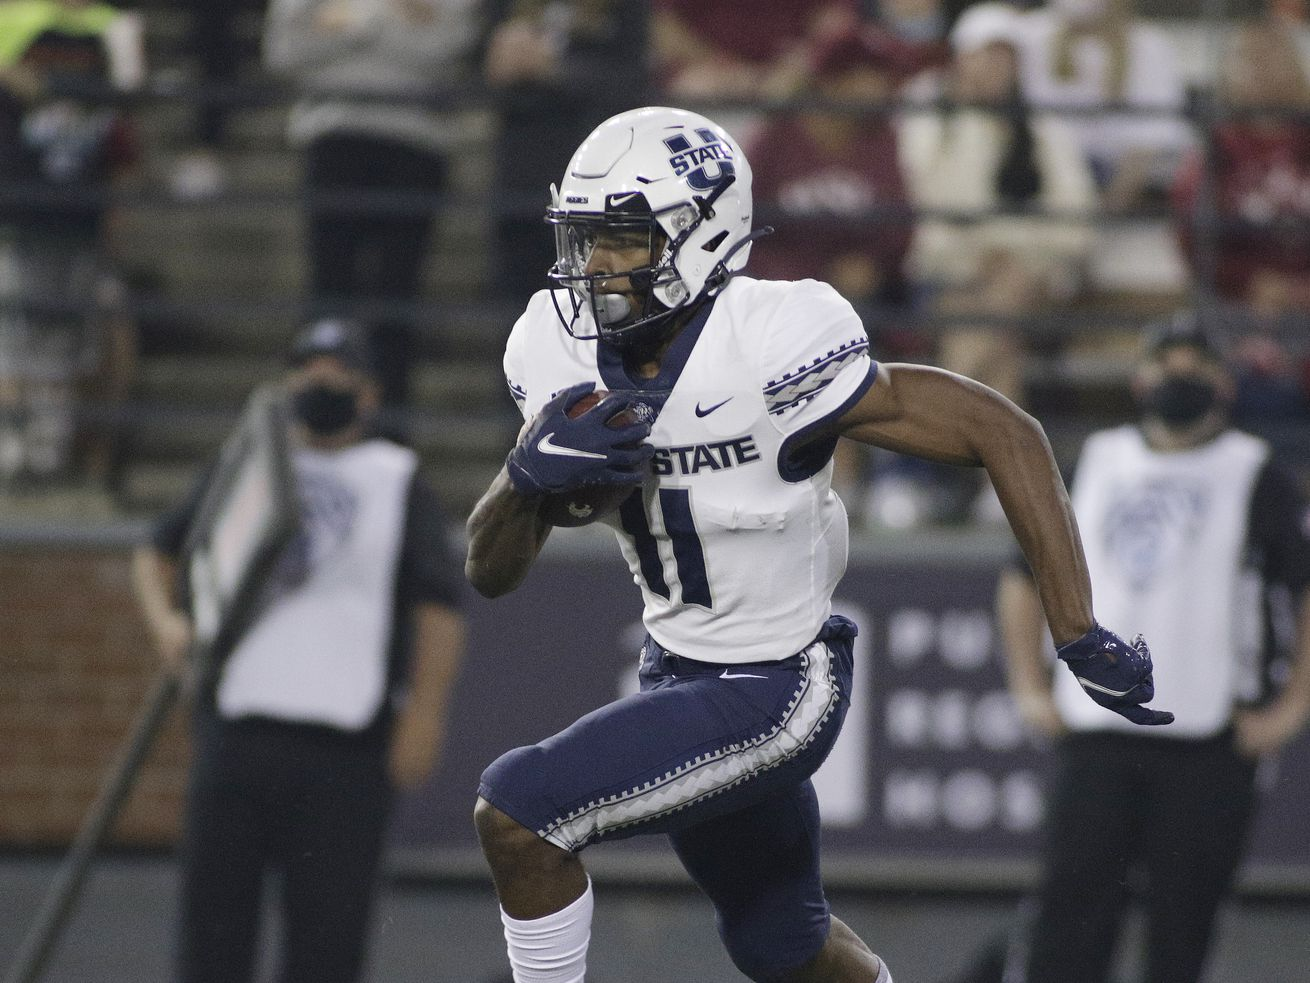 3 takeaways from Utah State's road win over UNLV